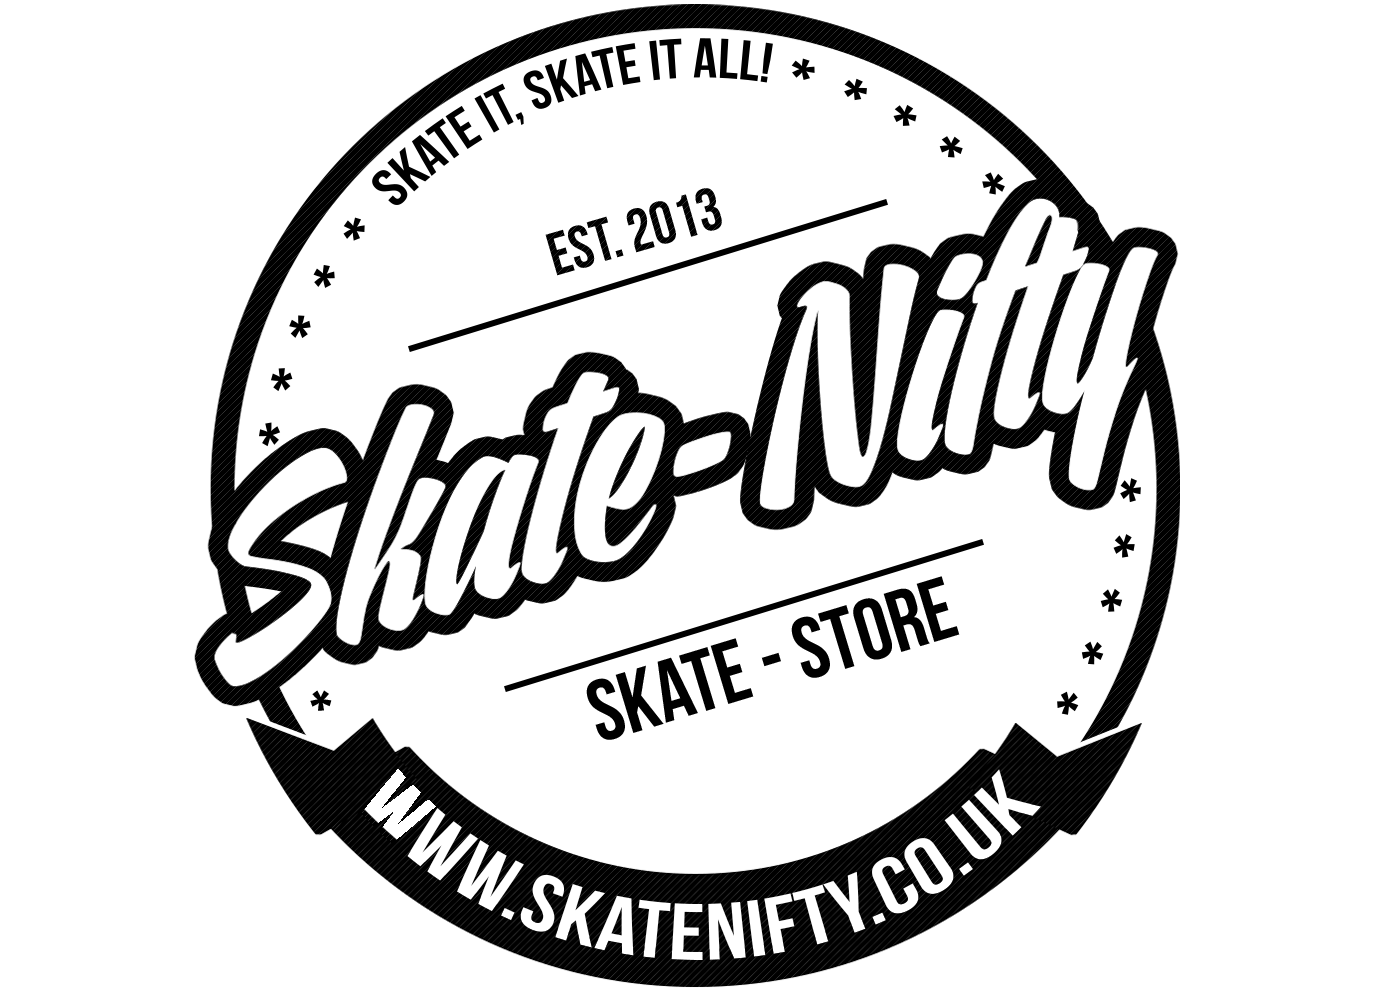 banner black and white stock Skate Nifty